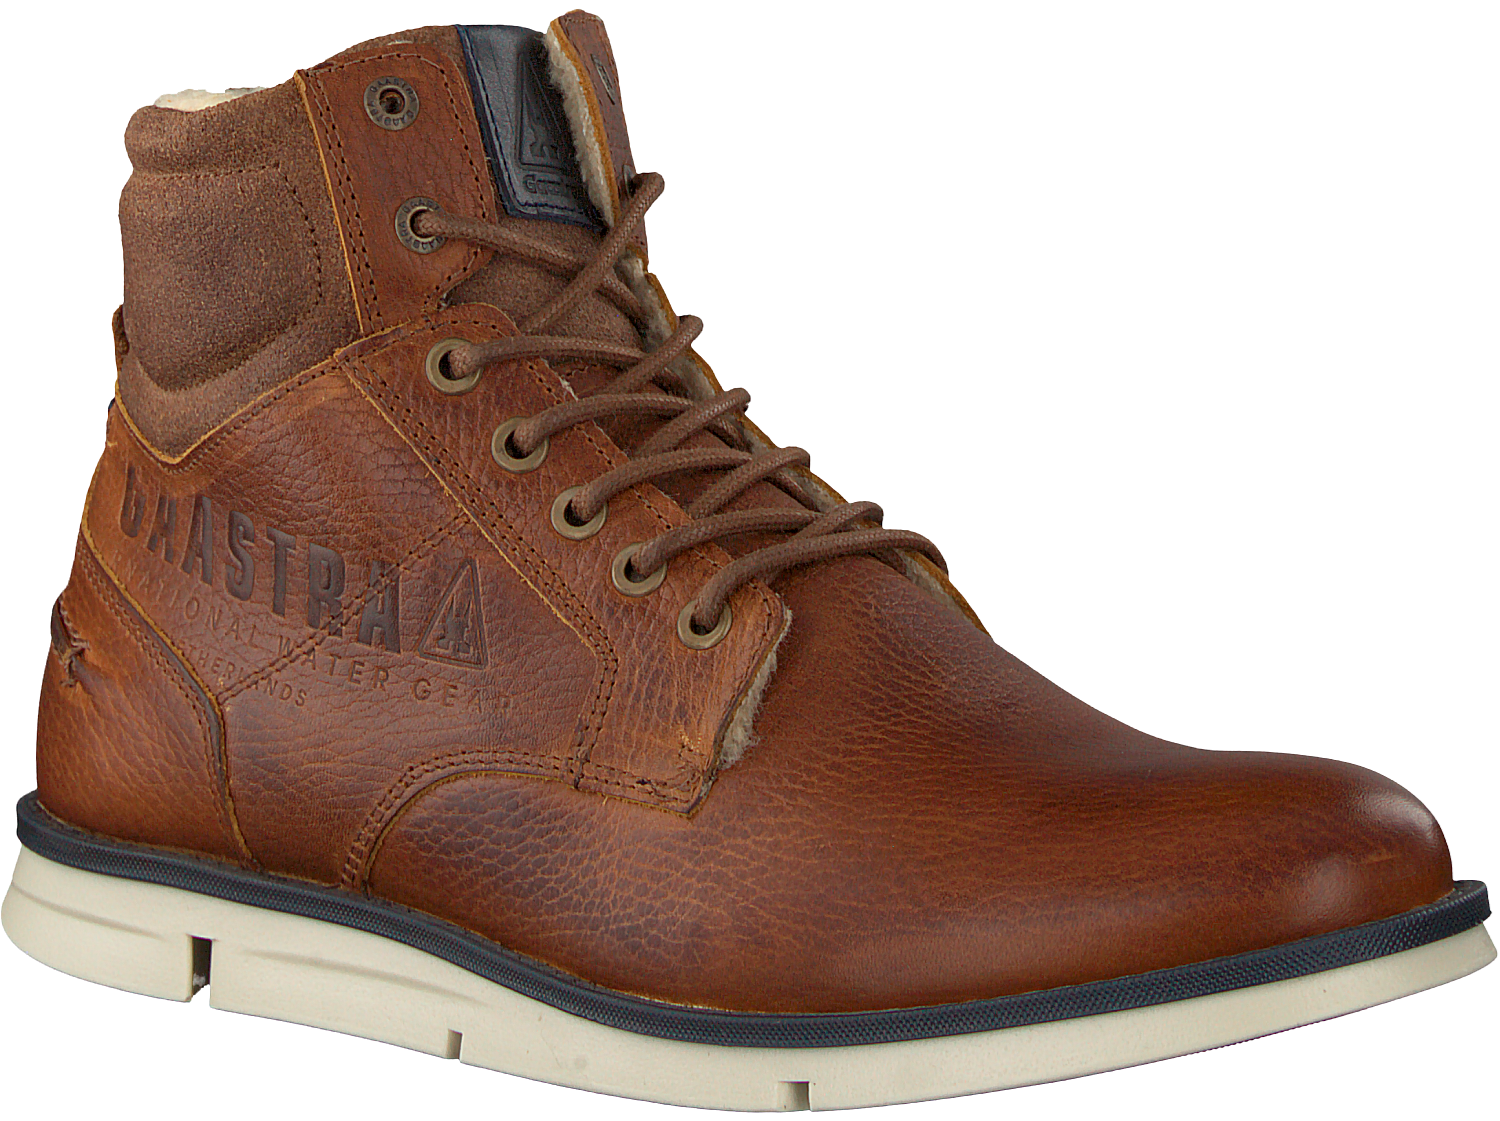 Omoda Gaastra High Bottillons Cognac En be Iberian Tmb vmwn0ON8